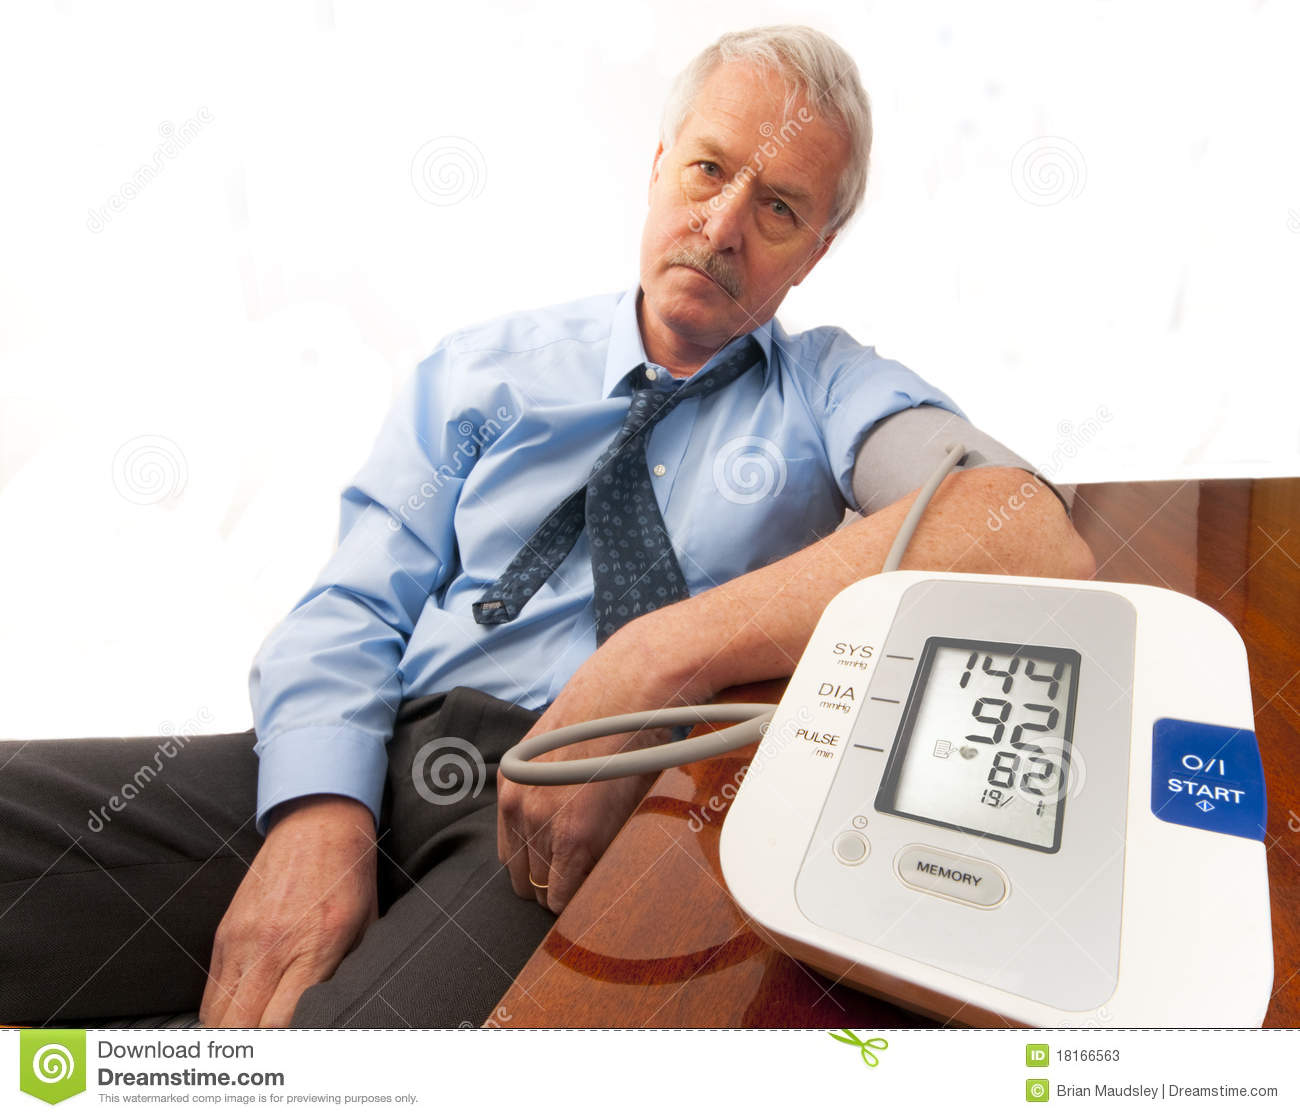 Stress Test Blood Pressure Readings: Worried Senior Man With High Blood Pressure. Royalty-Free